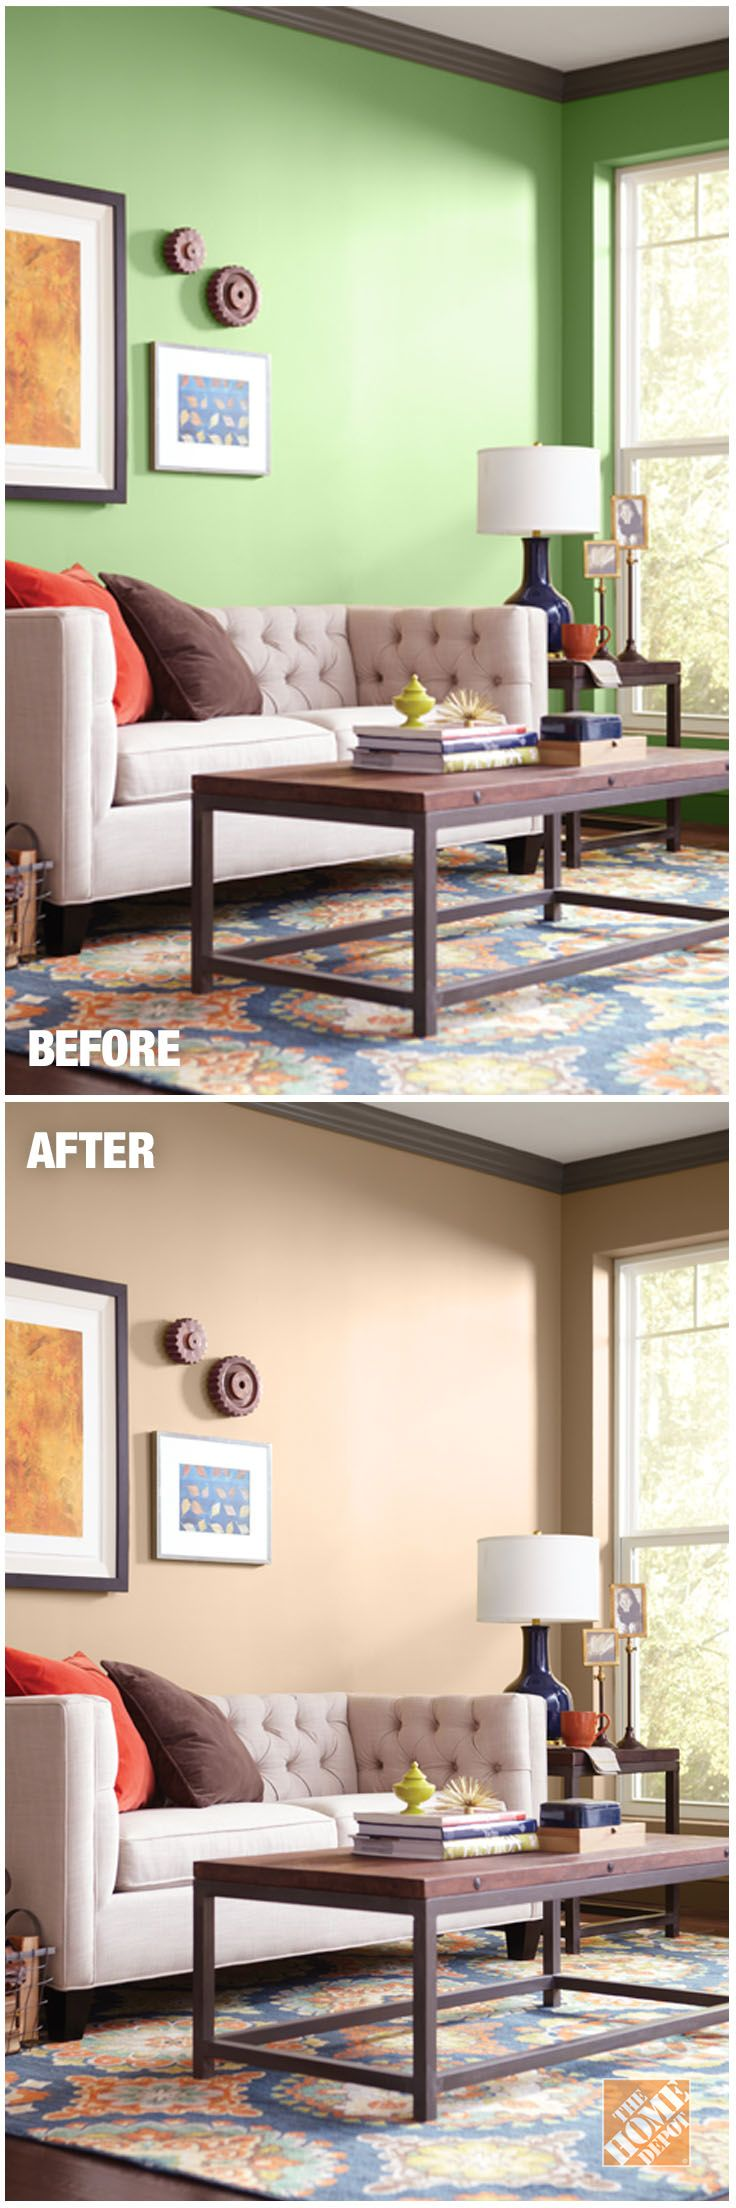 BEHR Paint Can Give A Room A Whole New Look! Explore On Trend, Neutral  Interior Paint Colors At The Home Depot Color Center. Part 71